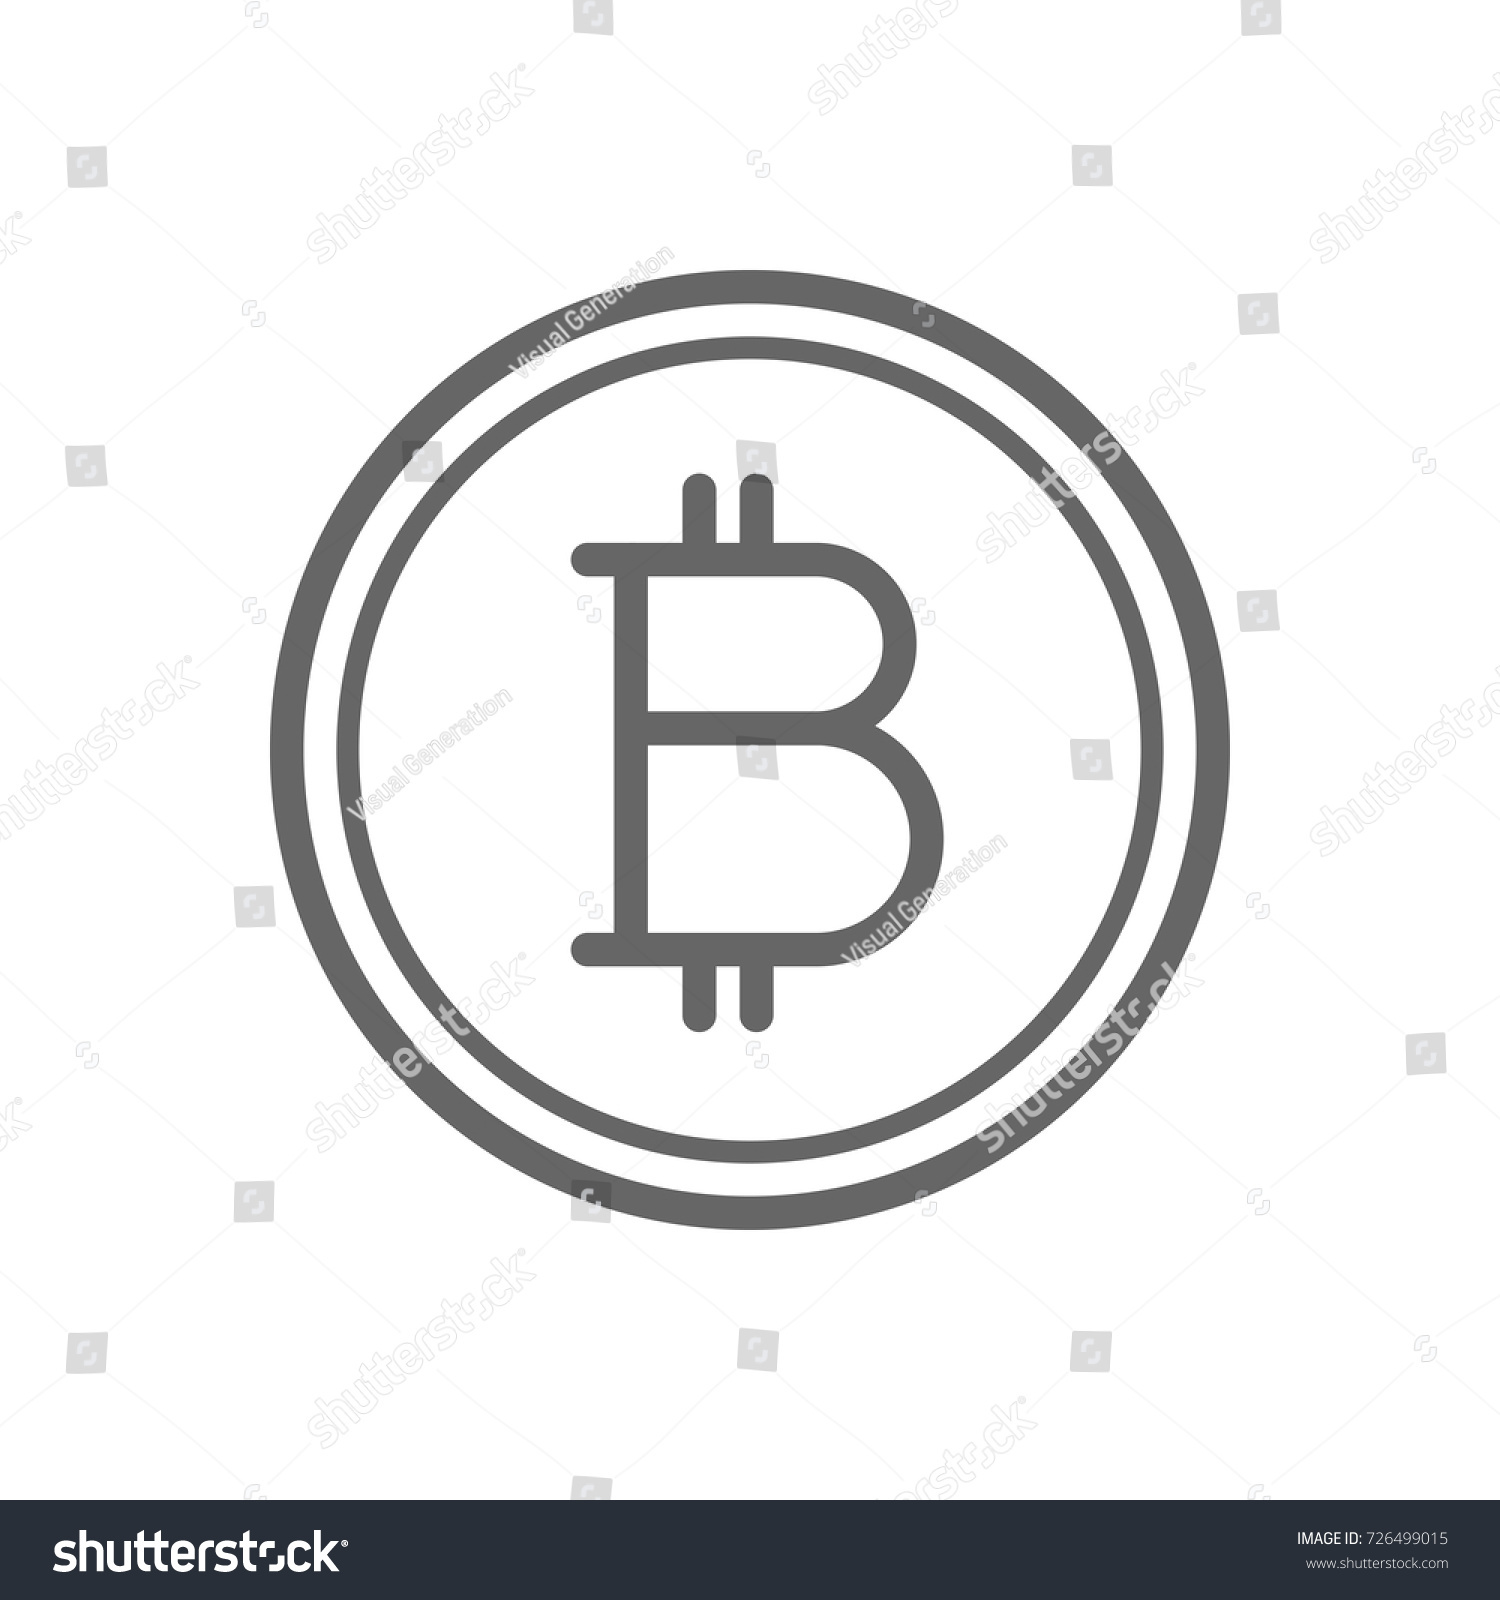 Bitcoin Coin Line Icon Cryptocurrency Stock Vector 726499015